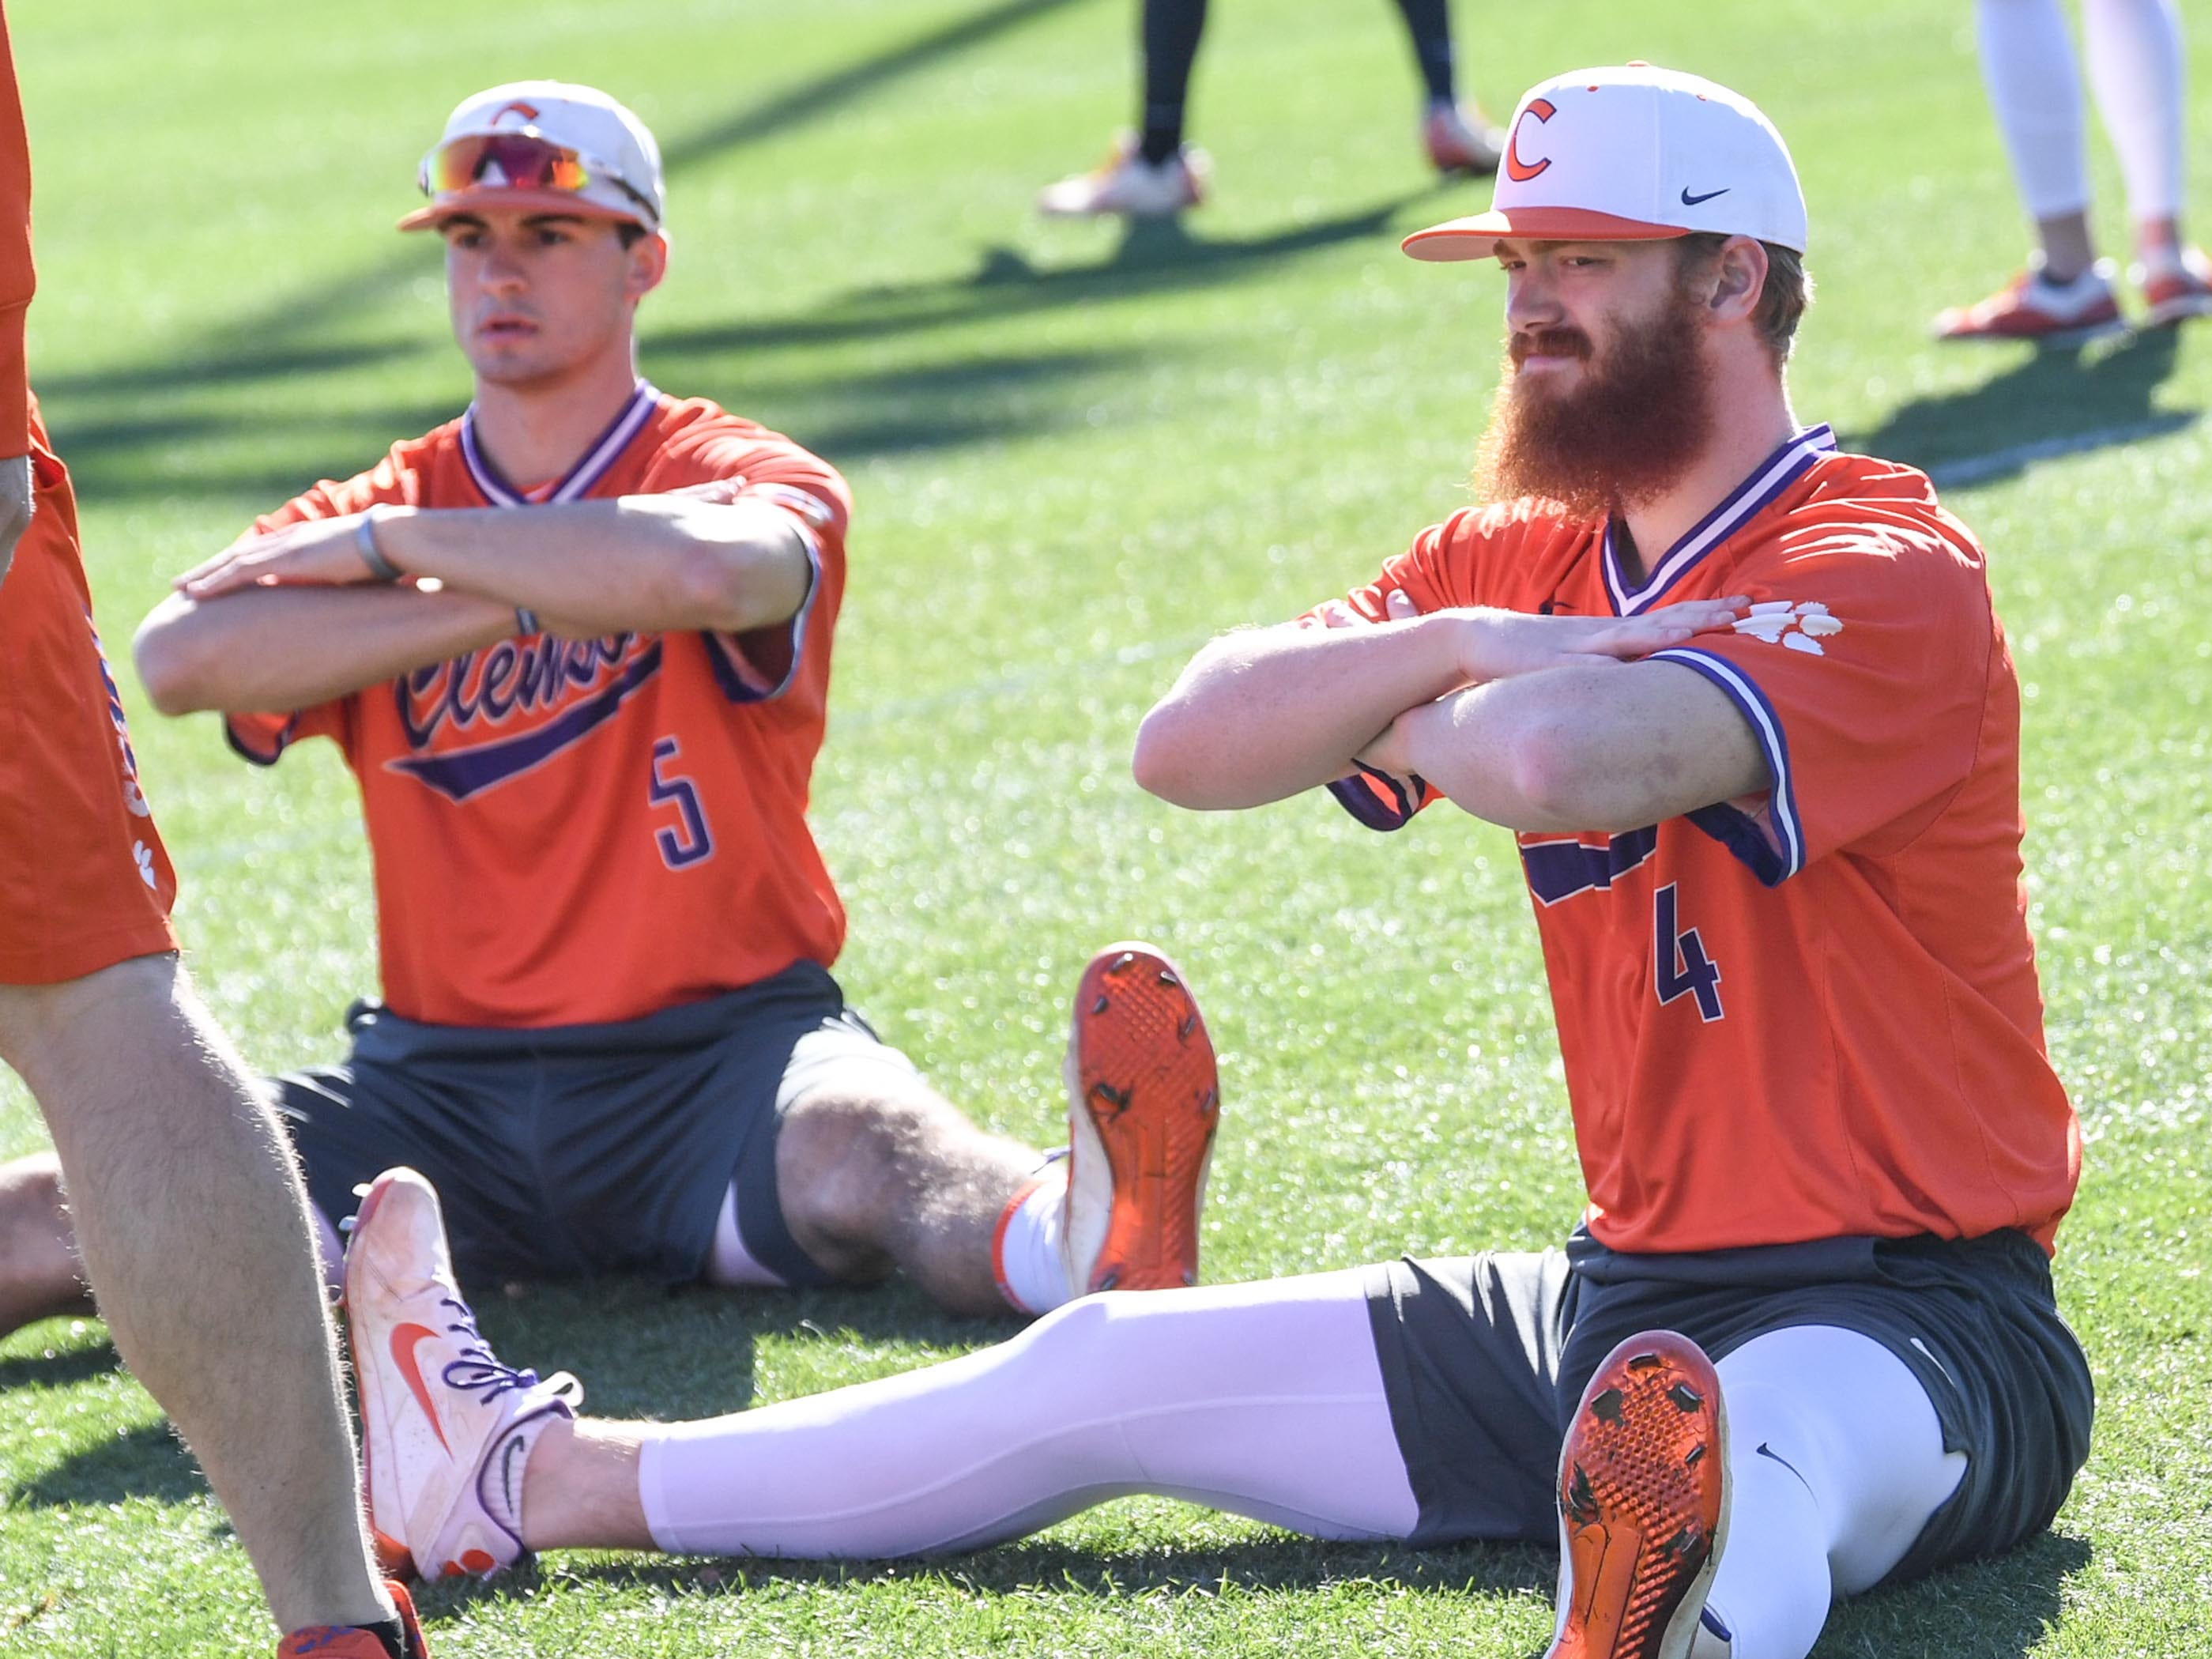 Clemson freshman Sam Hall, left, and redshirt sophomore Grayson Byrd stretch during practice at Doug Kingsmore Stadium in Clemson Friday.